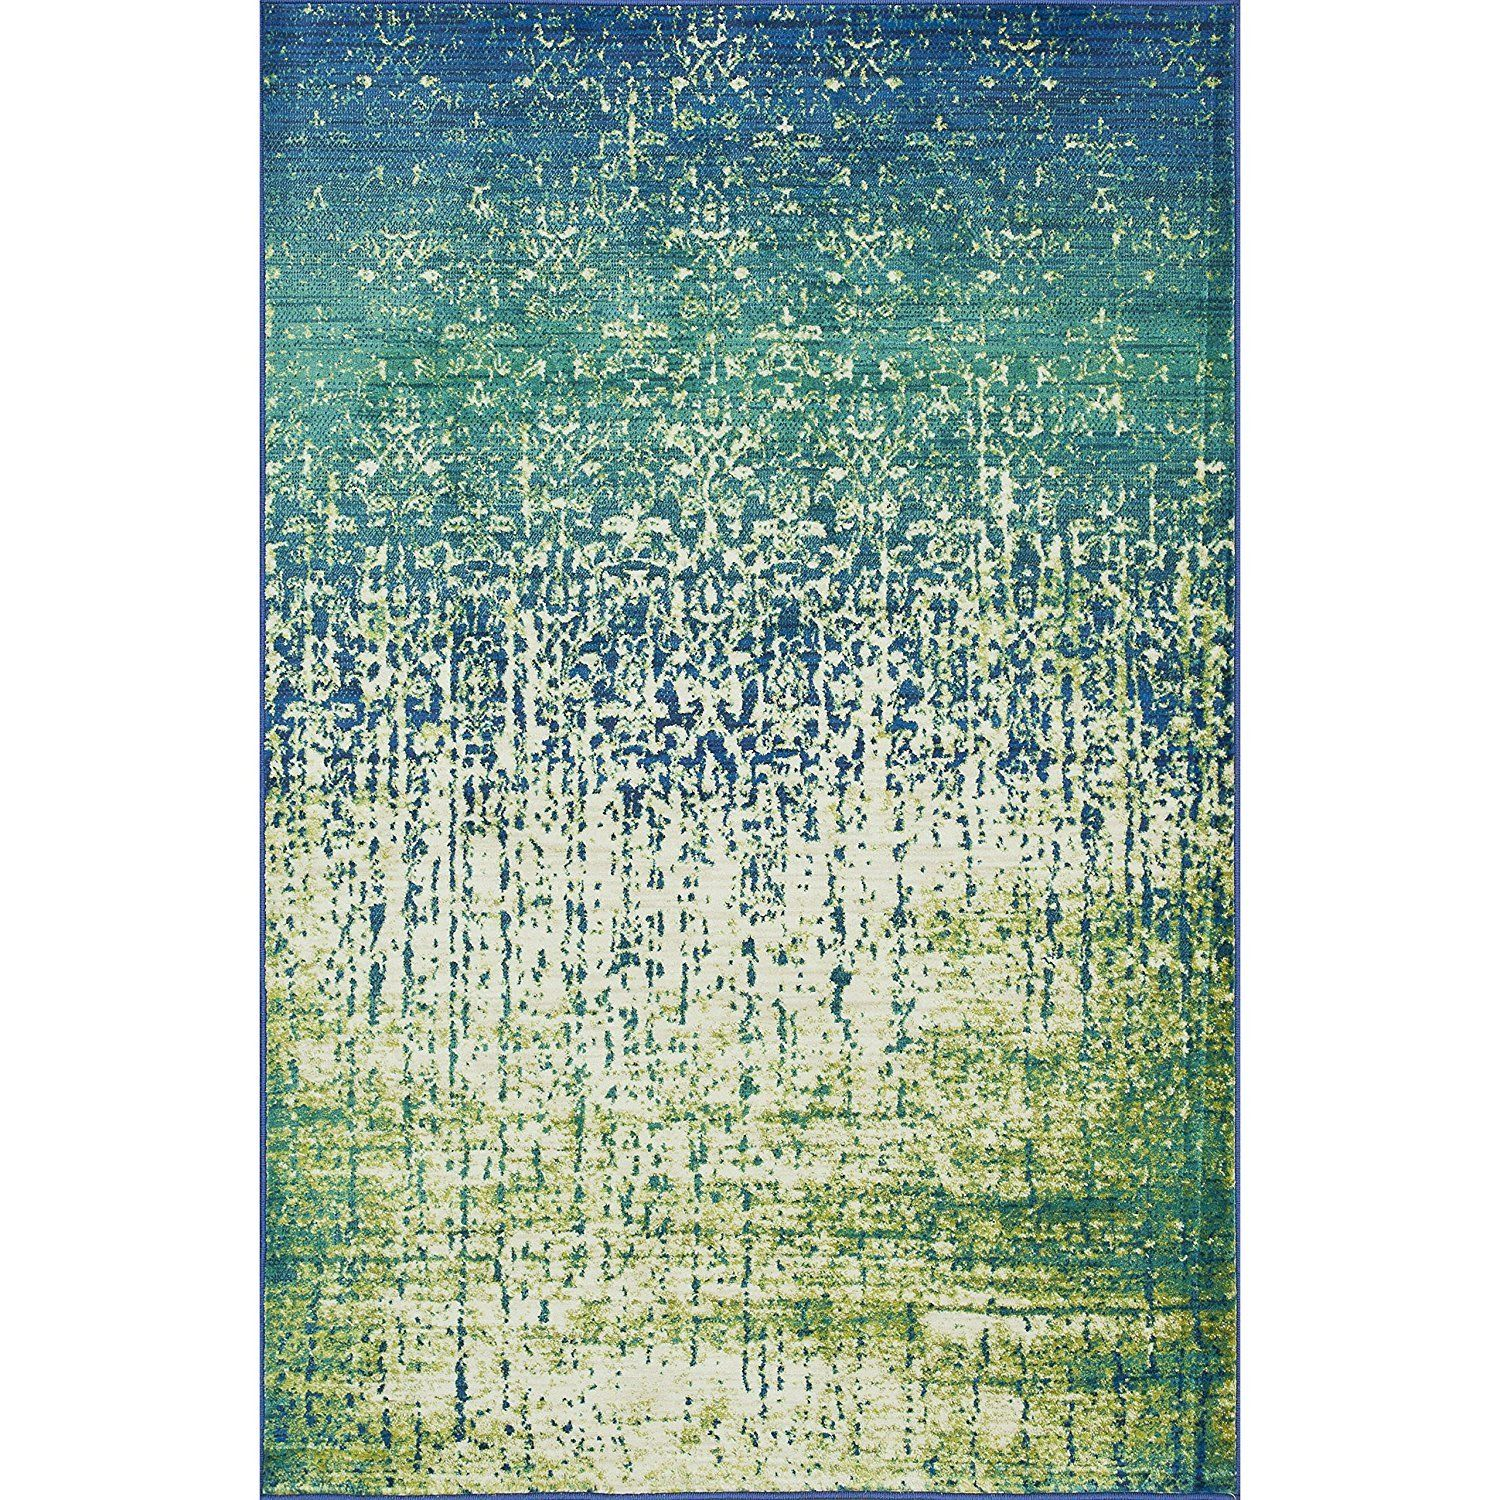 "3'9""x5'2"" Aqua Blue Sage Green Cascade Watercolor Painting Splash Printed Area Rug Indoor Graphical Pattern Living Room Rectangle Carpet Graphic Art"